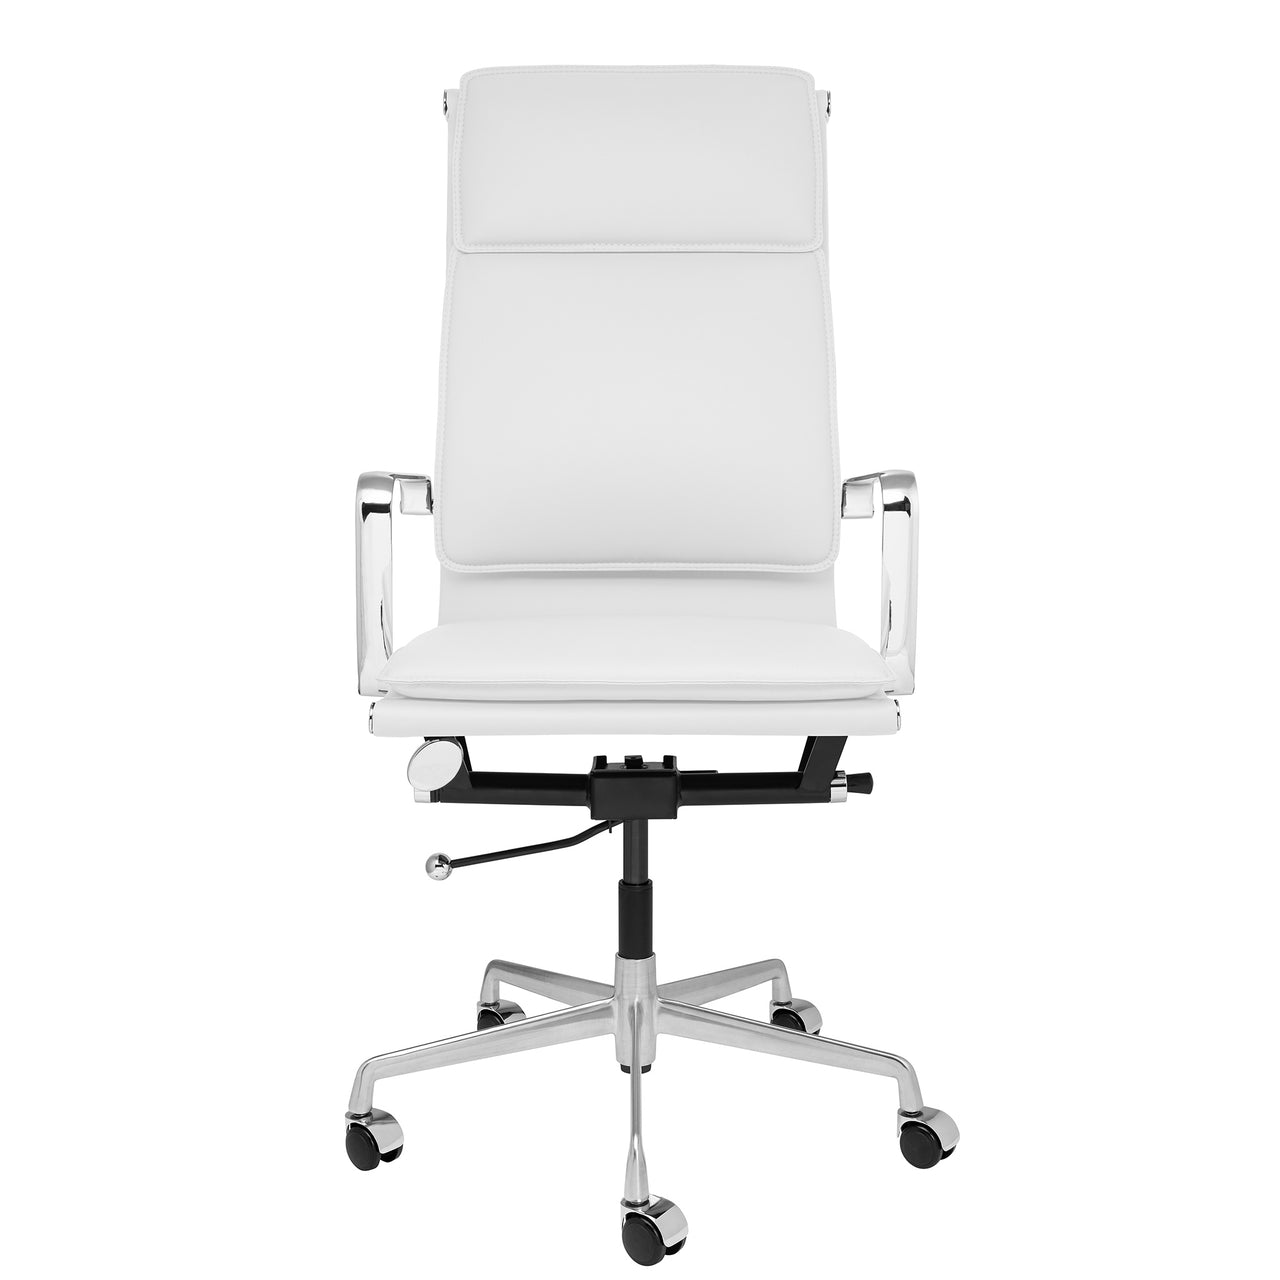 Lexi Tall Back Soft Pad Office Chair (White)